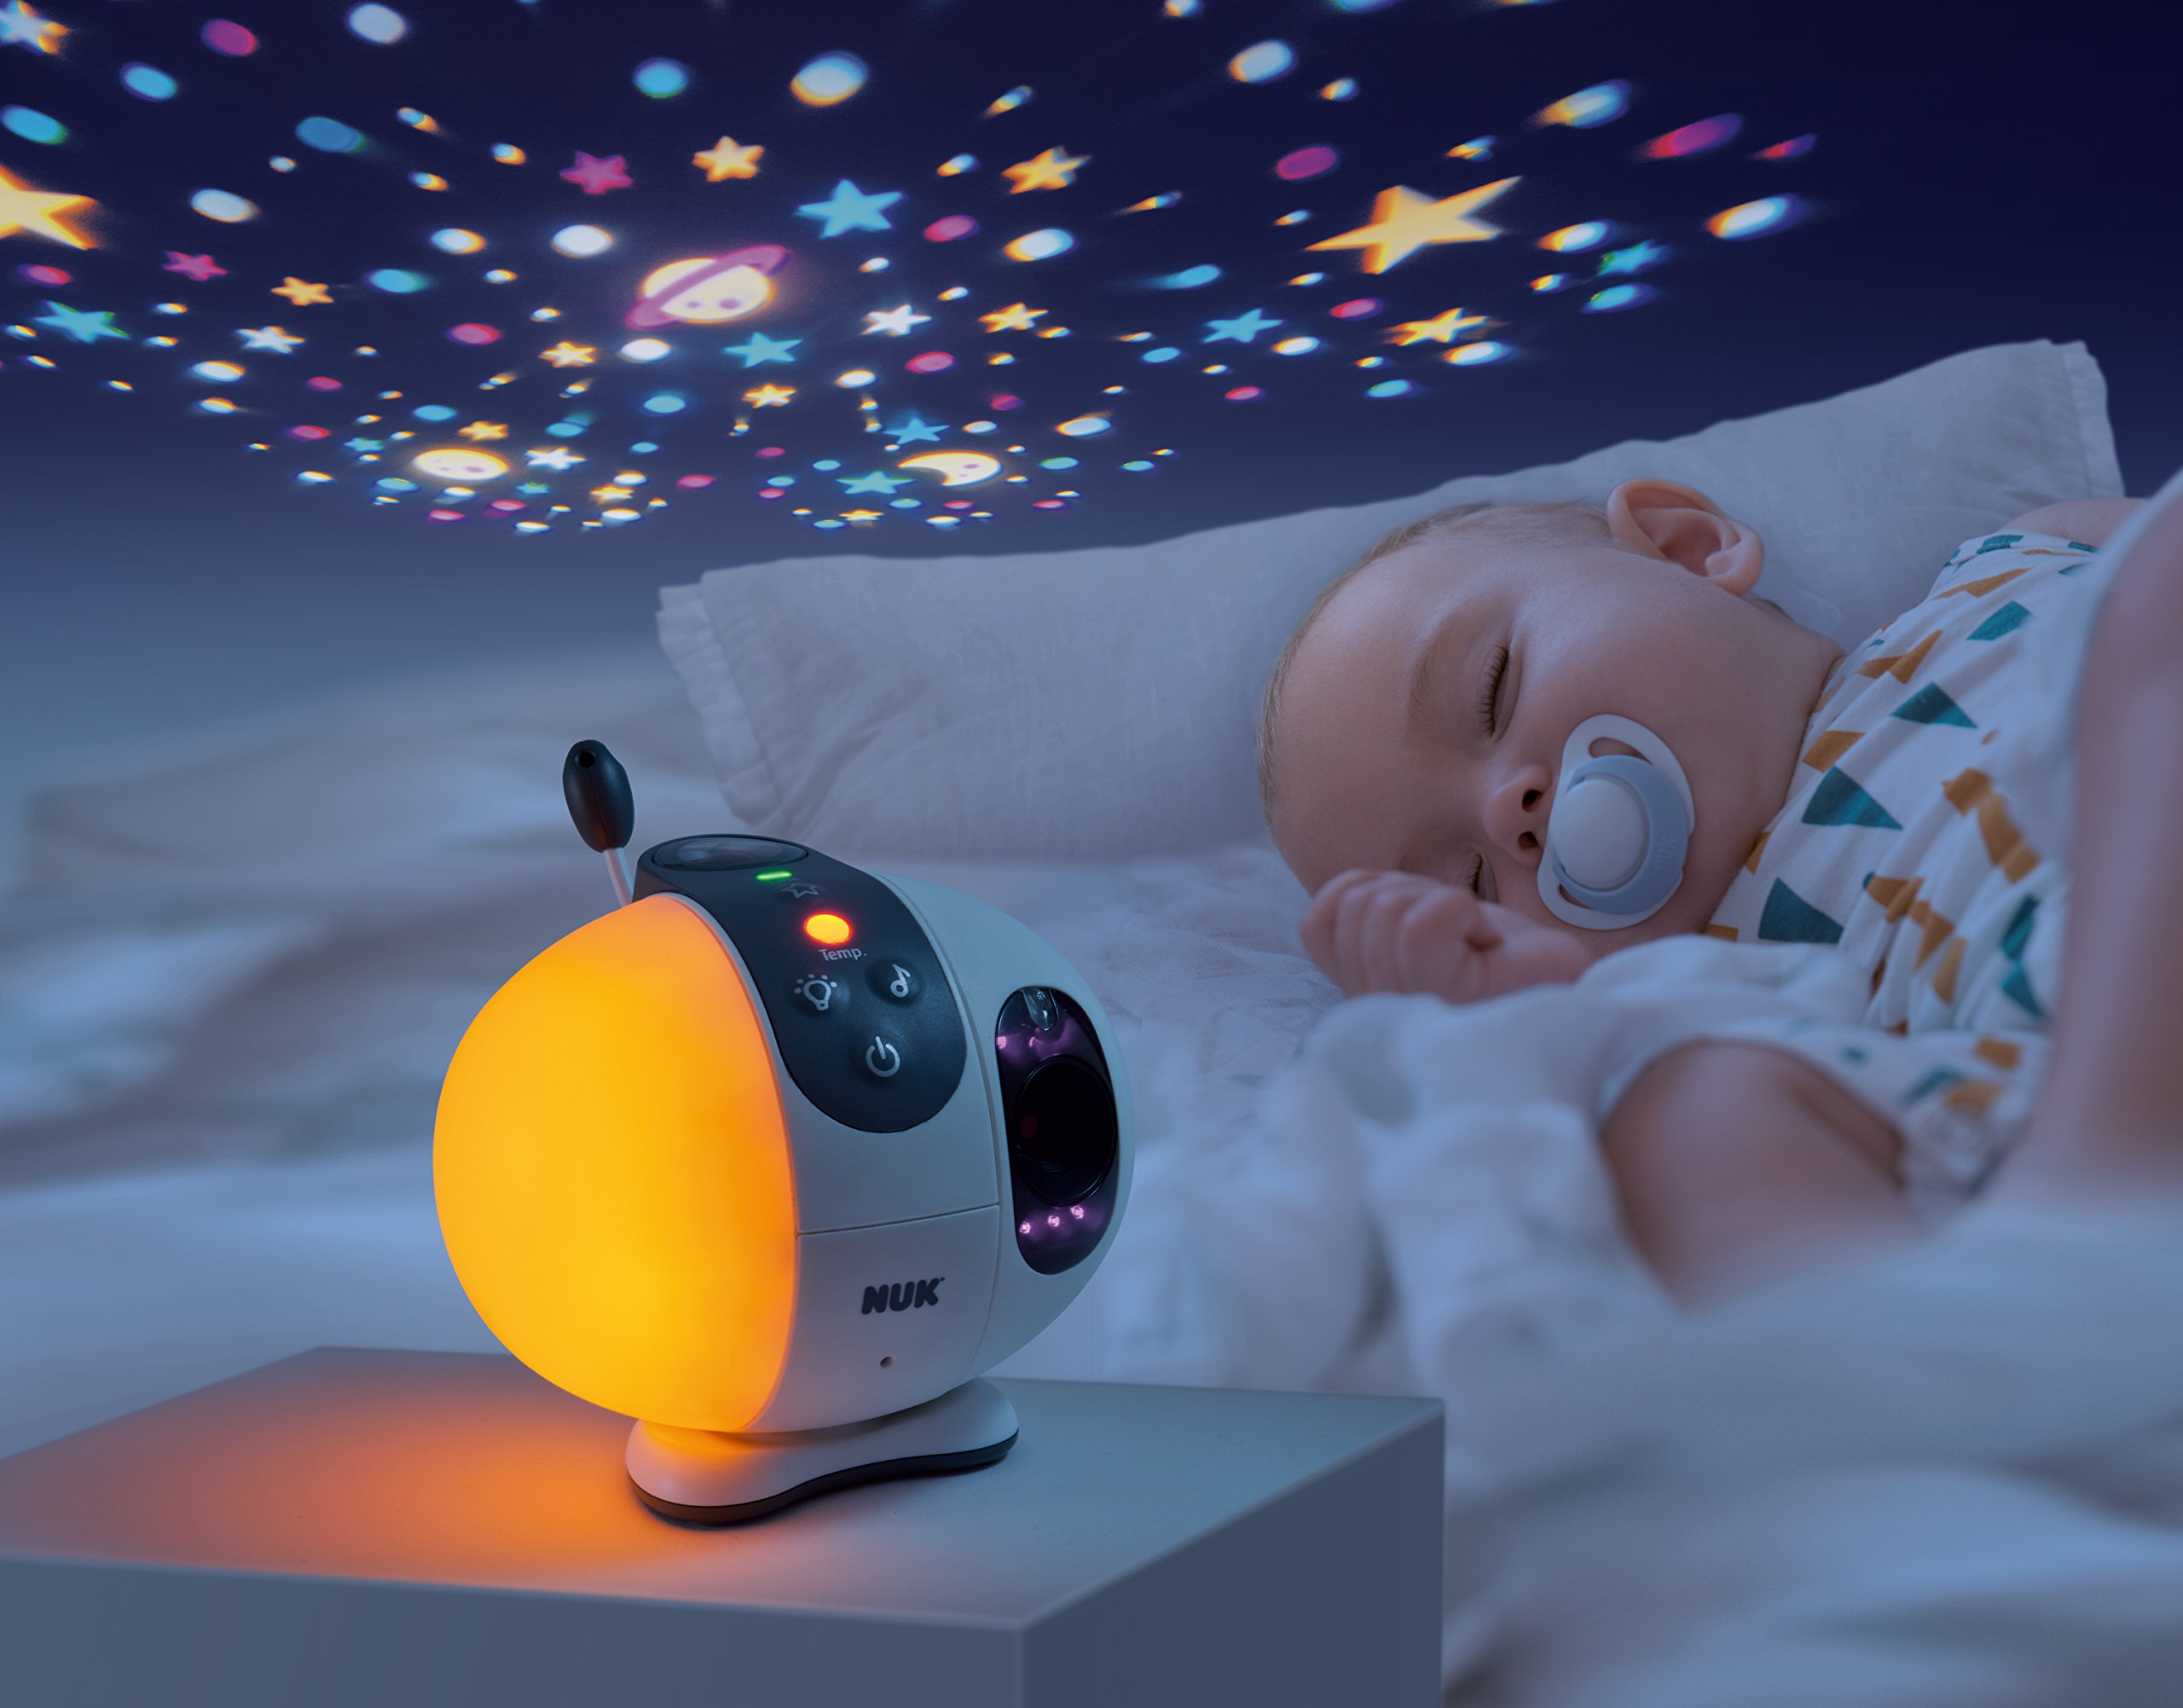 NUK Eco Control + Max 410 Digital Baby Monitor with Camera Starlight Projection, Free from High-Frequency Radiation in Eco Mode